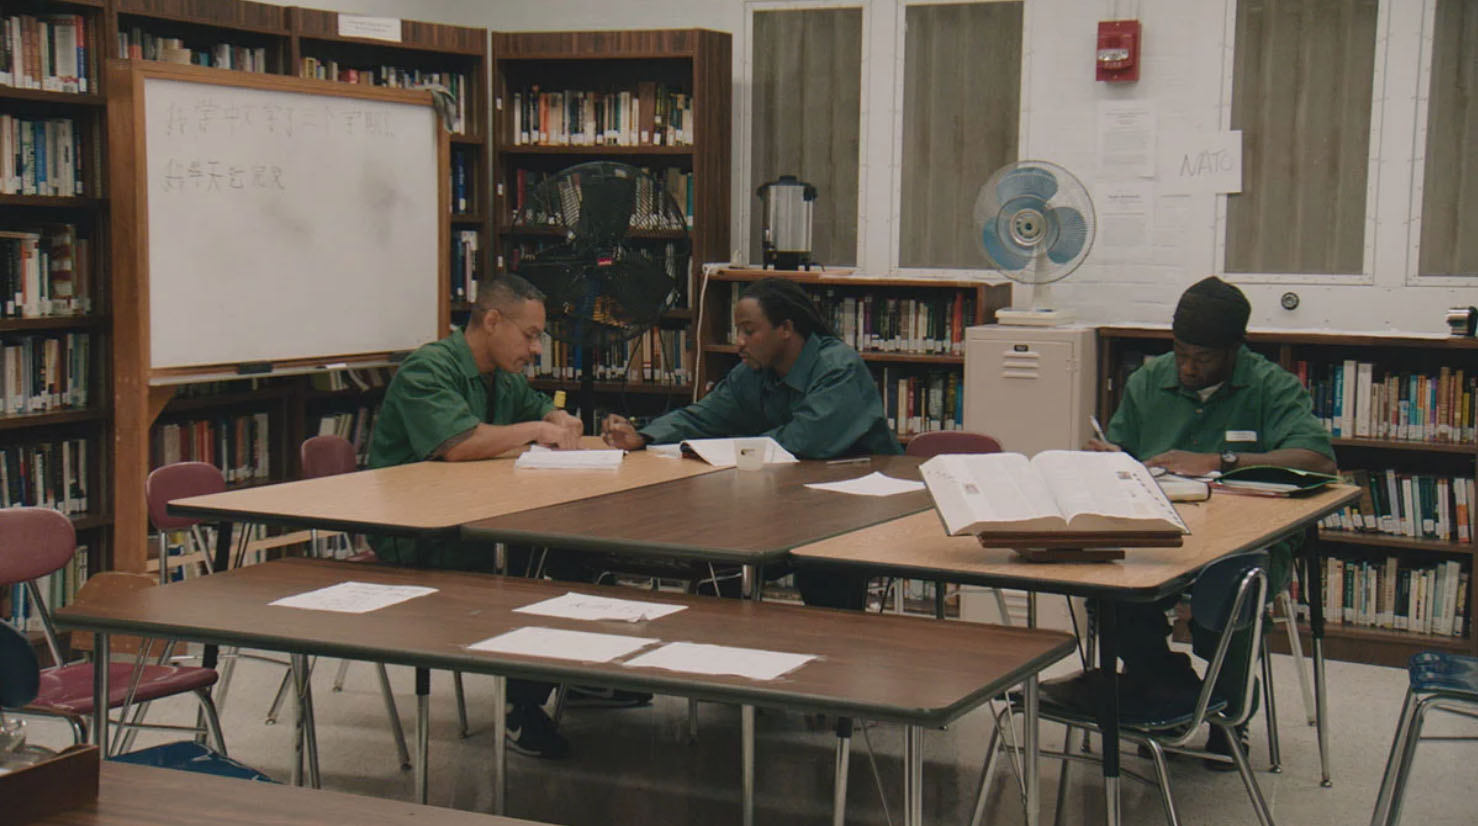 BPI students study in the library. (Skiff Mountain Films)